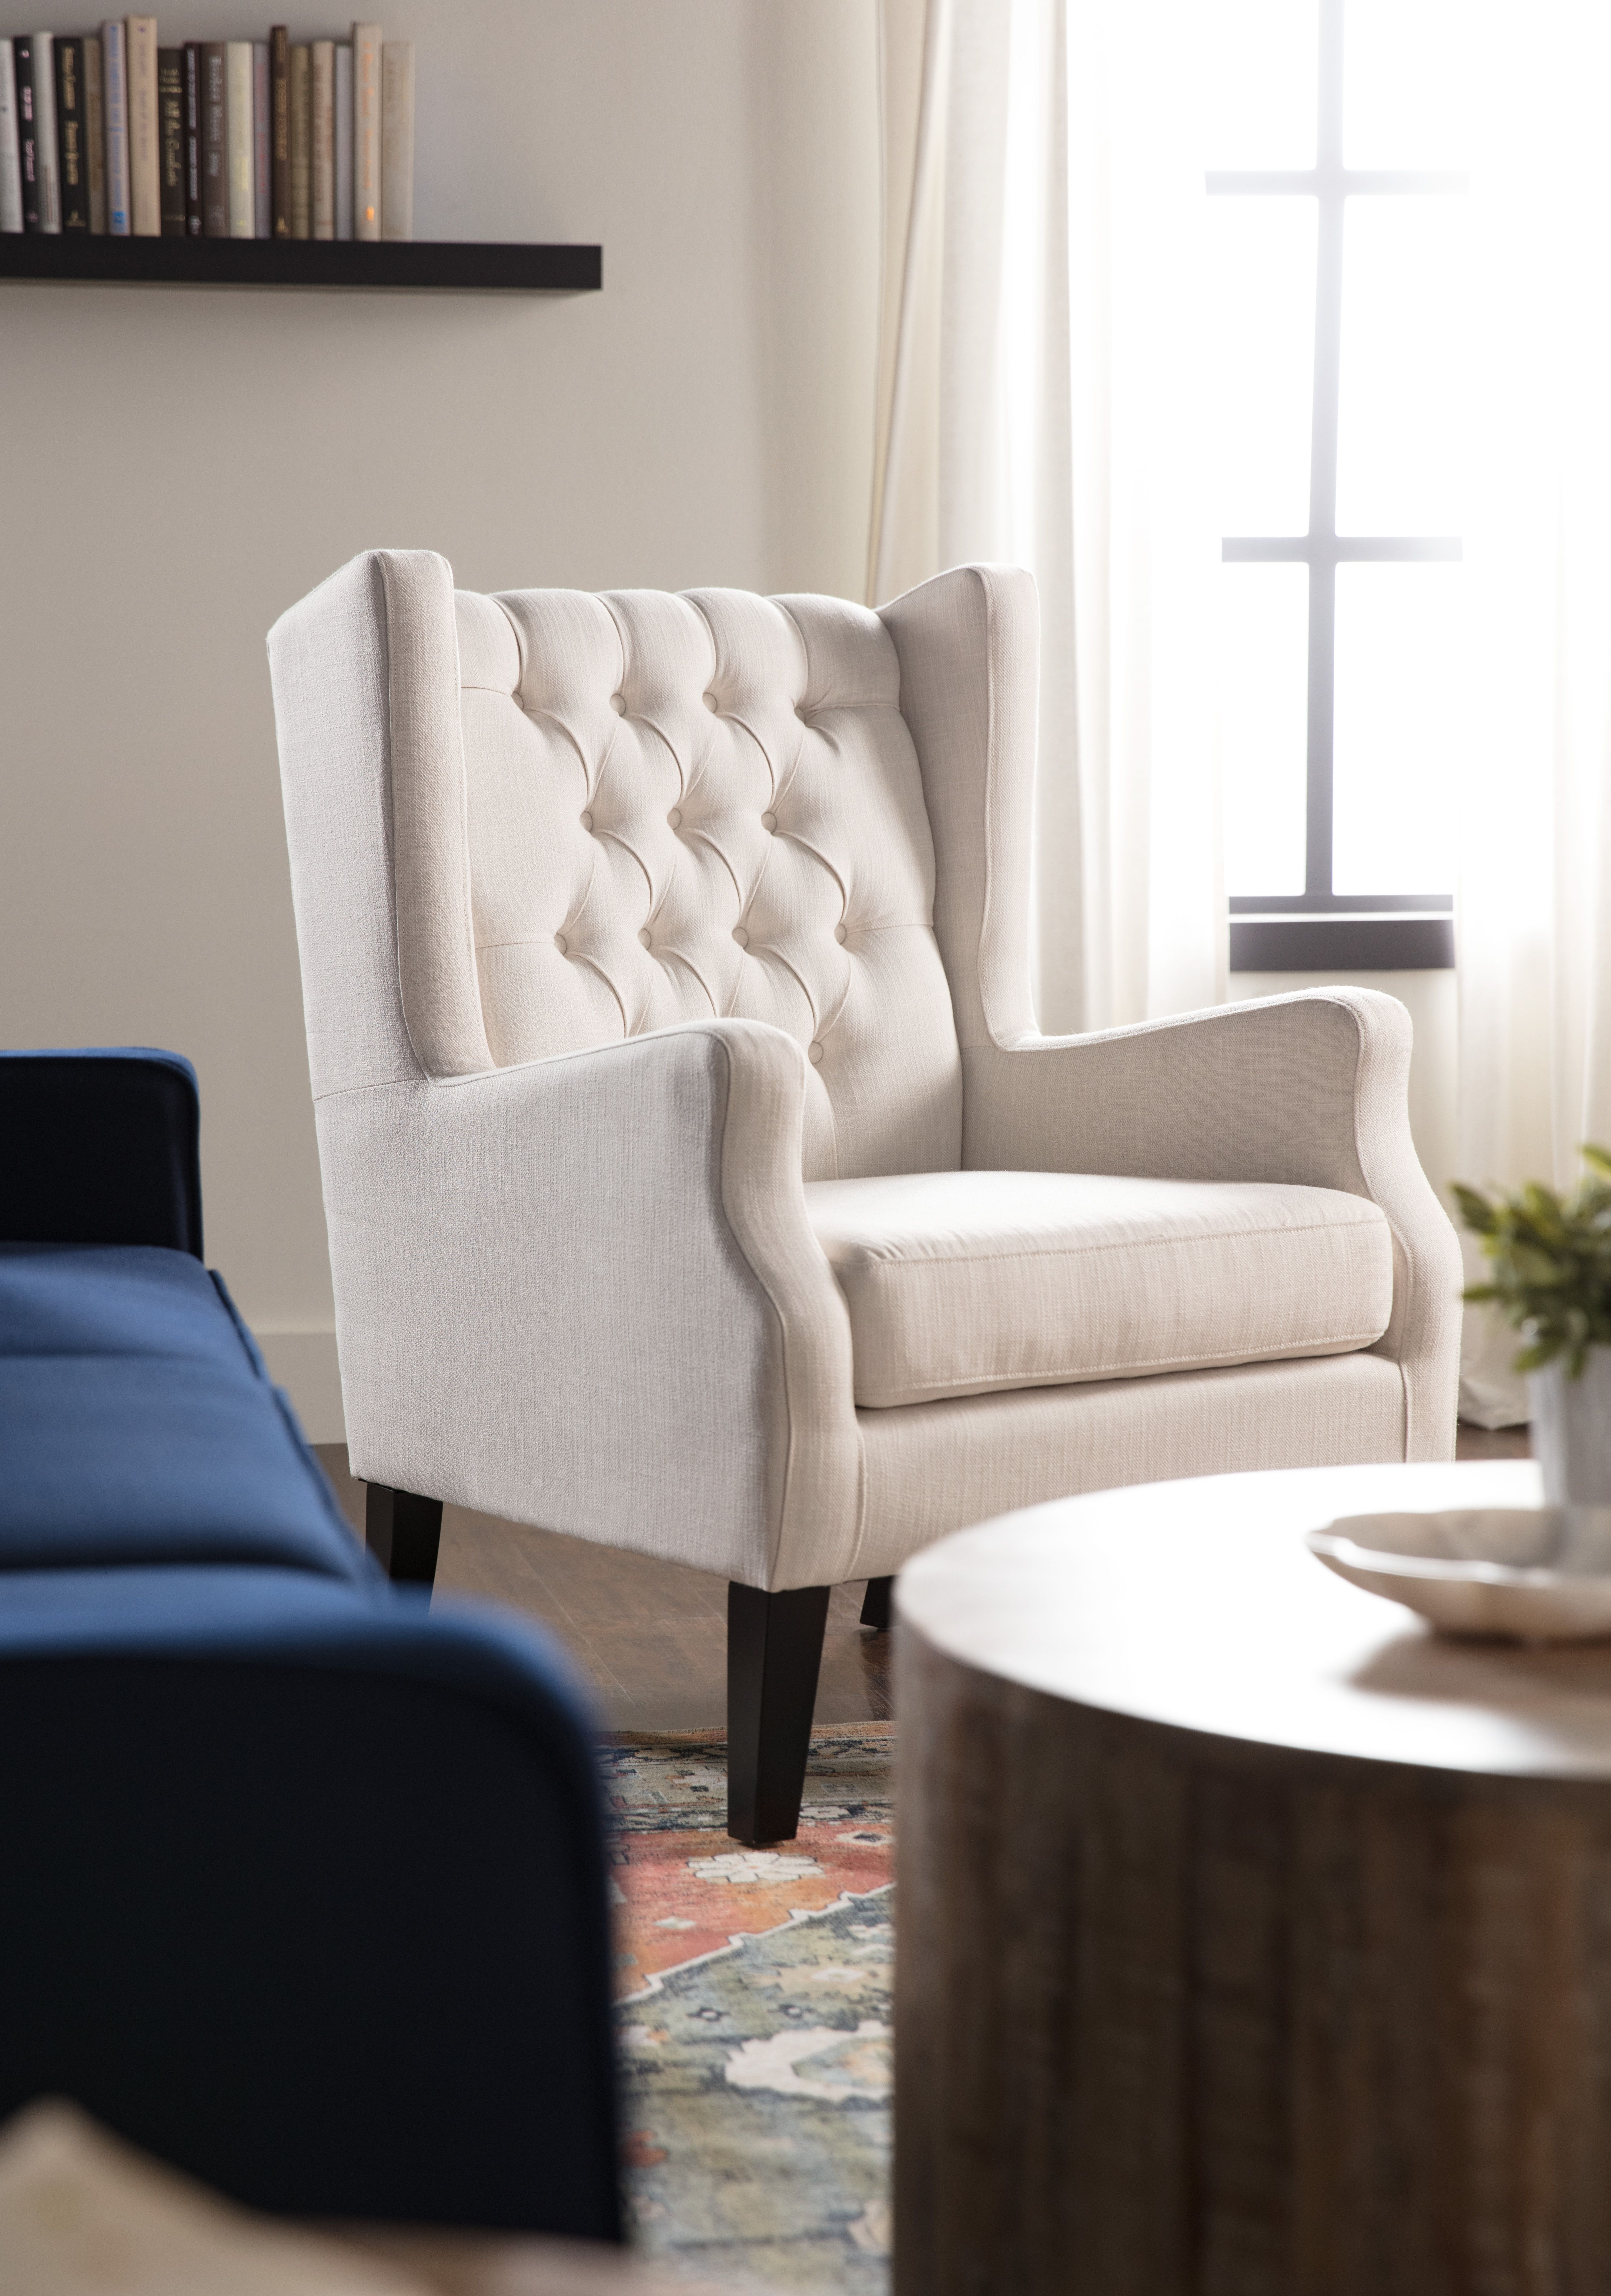 Upholstered Wingback Chair Adds Timeless Elegance To Any Living